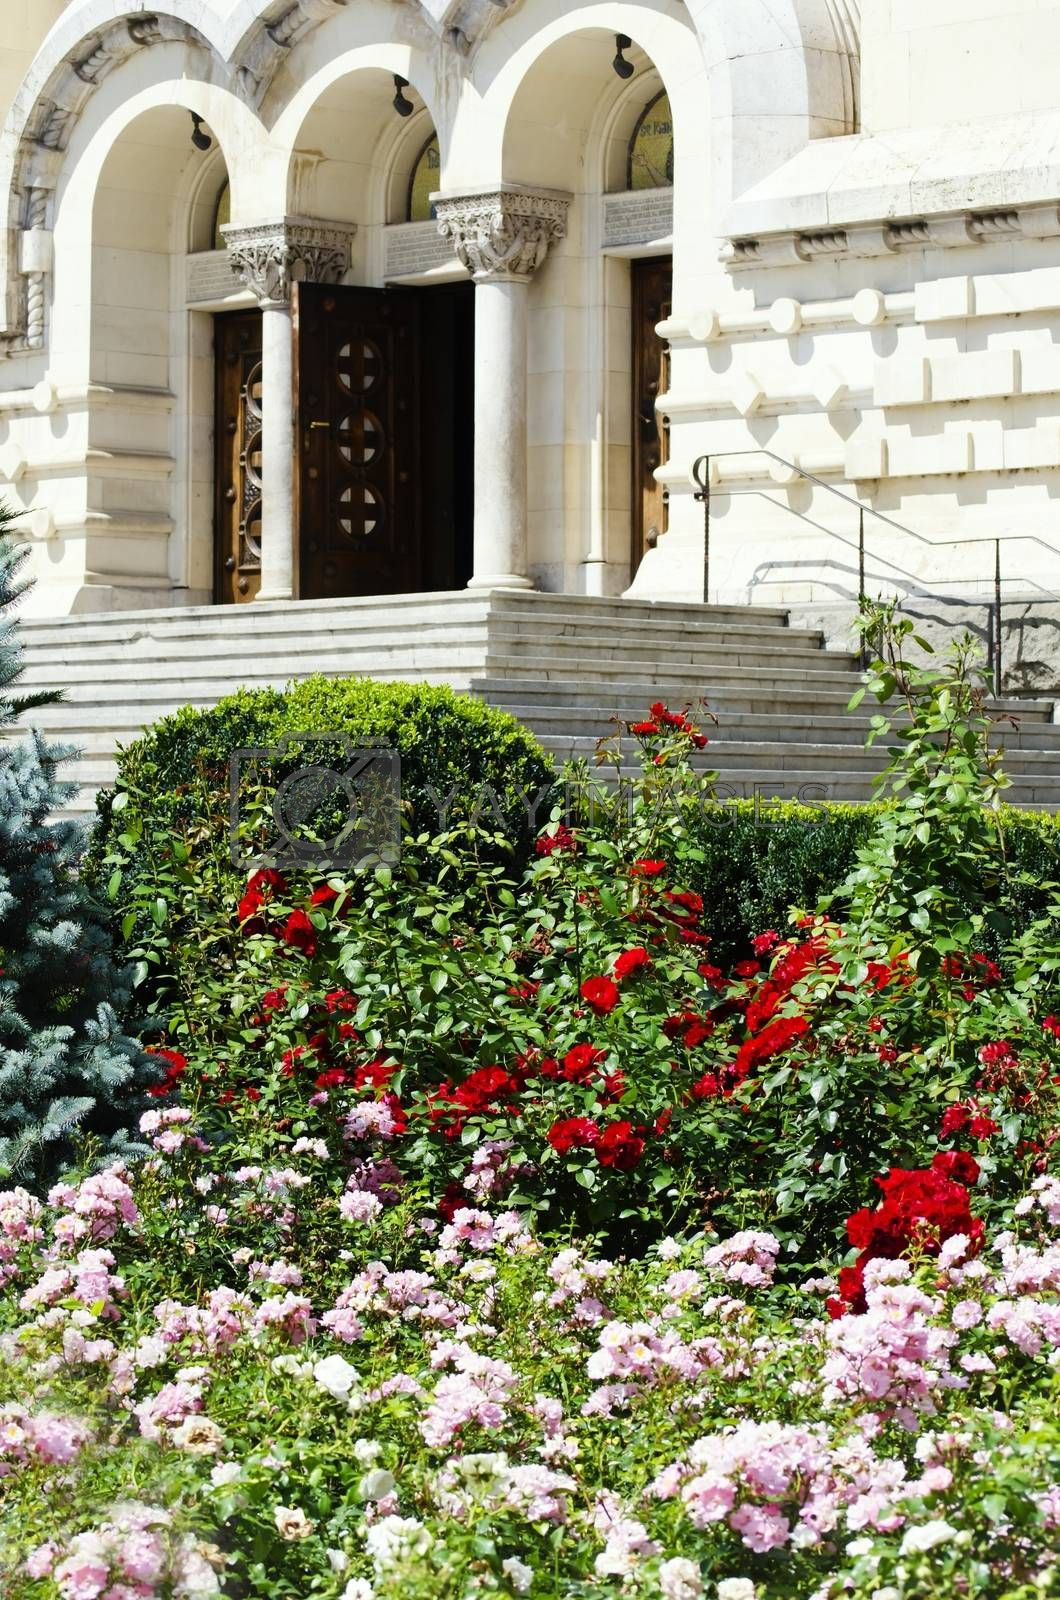 Decorative Garden With Flowers and Old Building